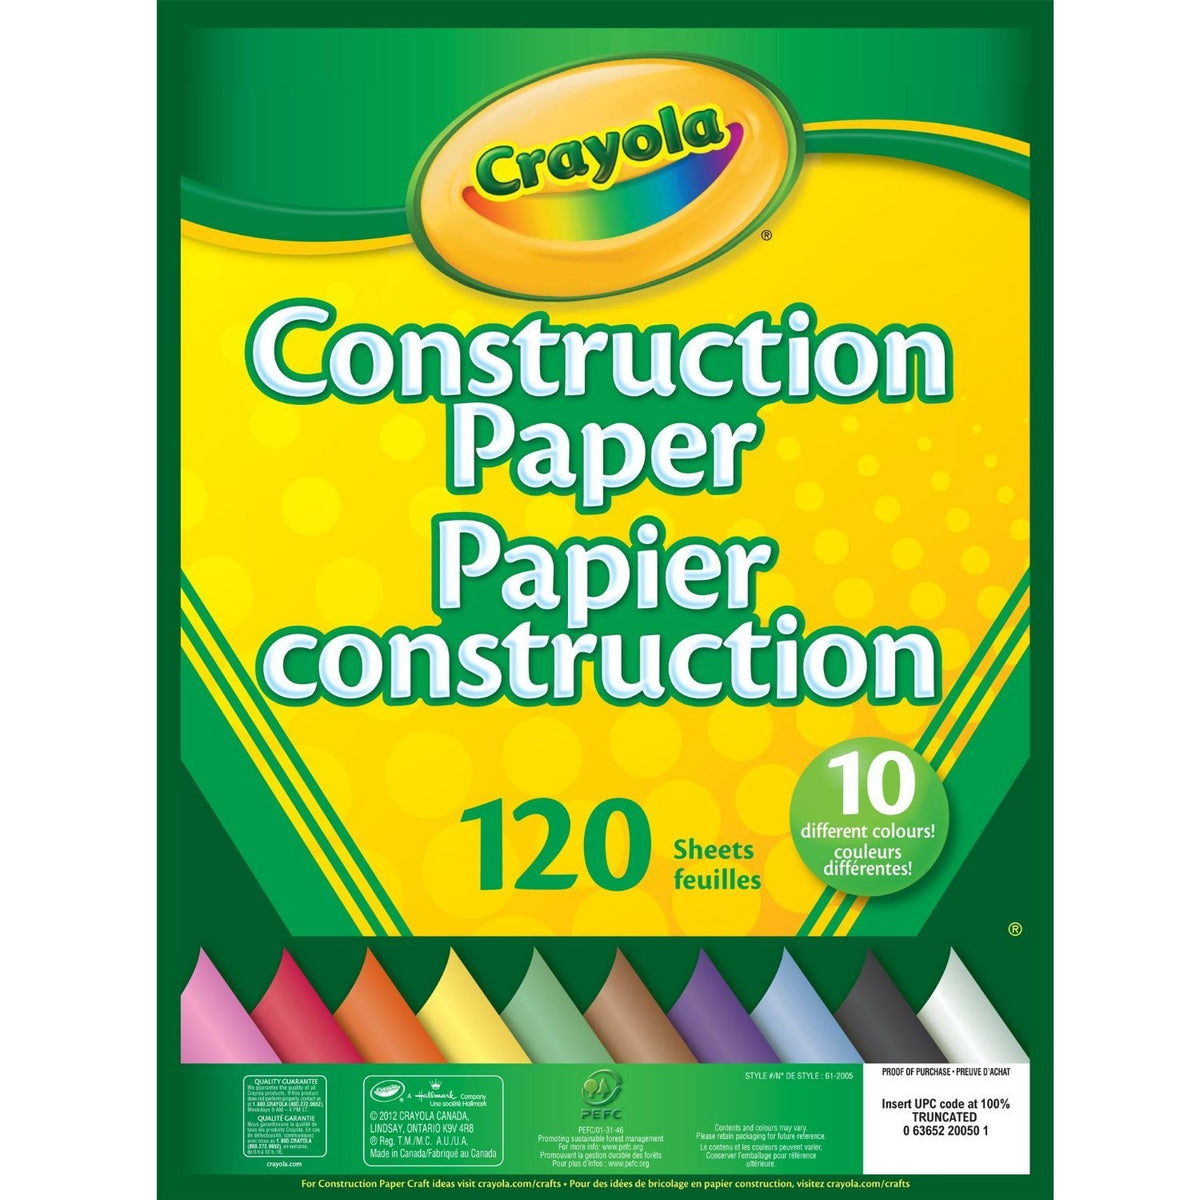 Crayola Construction Paper Pad 120 Pack